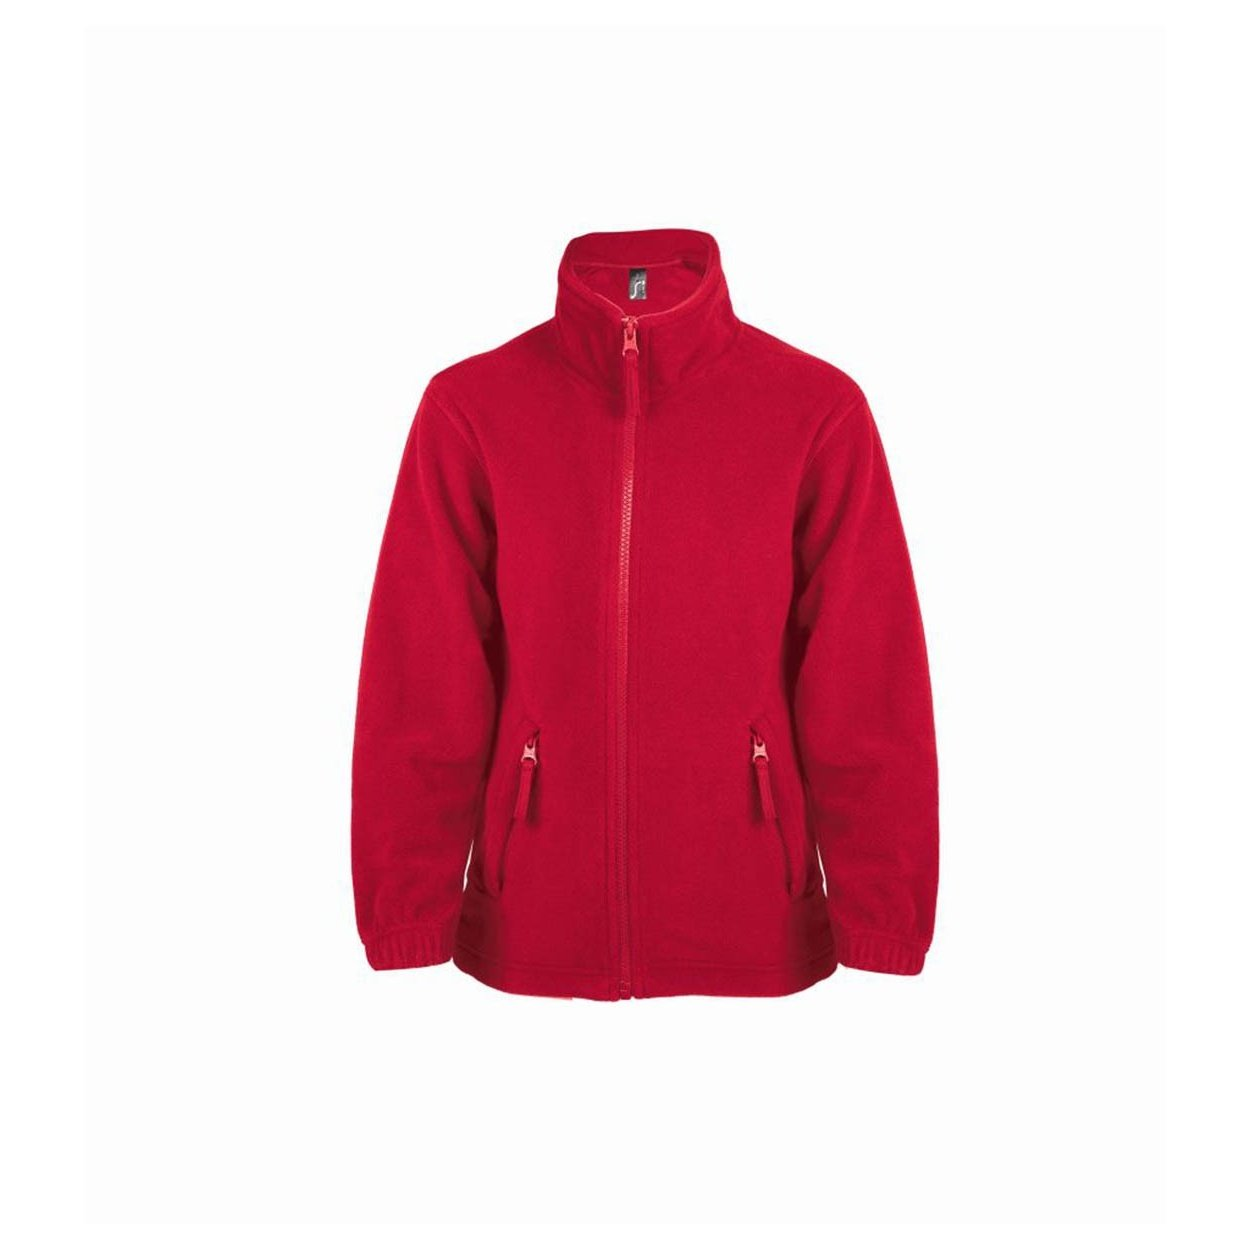 SOLS Childrens/Kids North Zip-Up Fleece Jacket